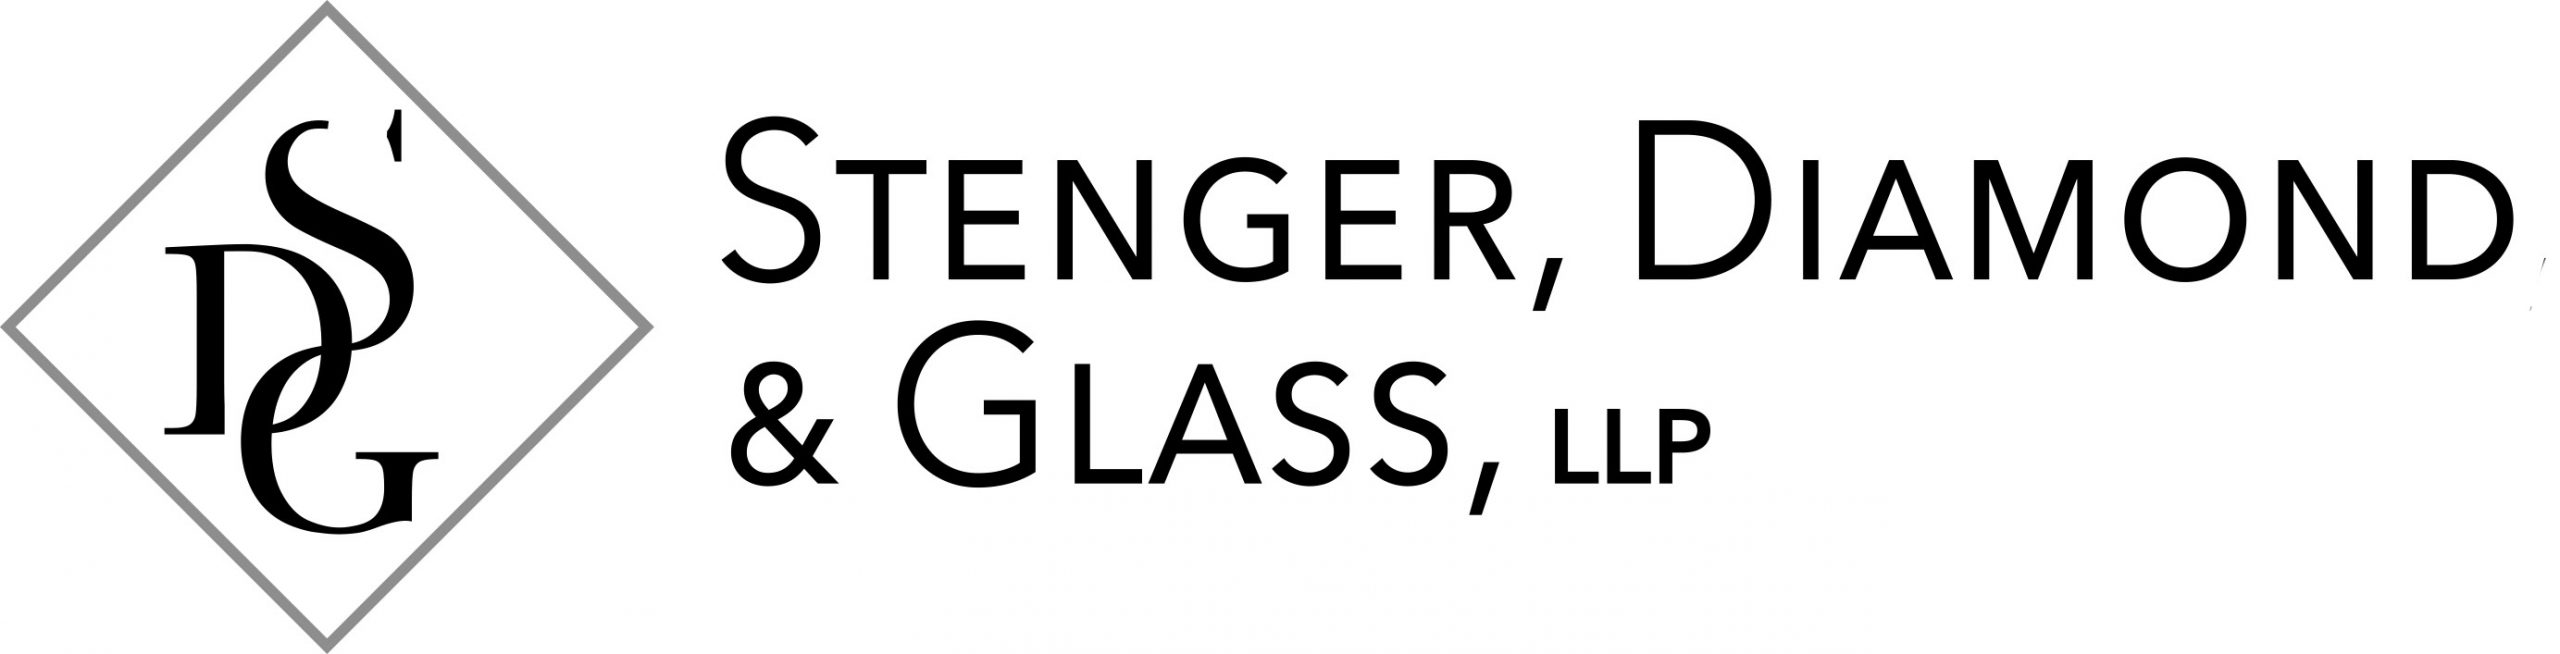 Stenger, Diamond & Glass LLP